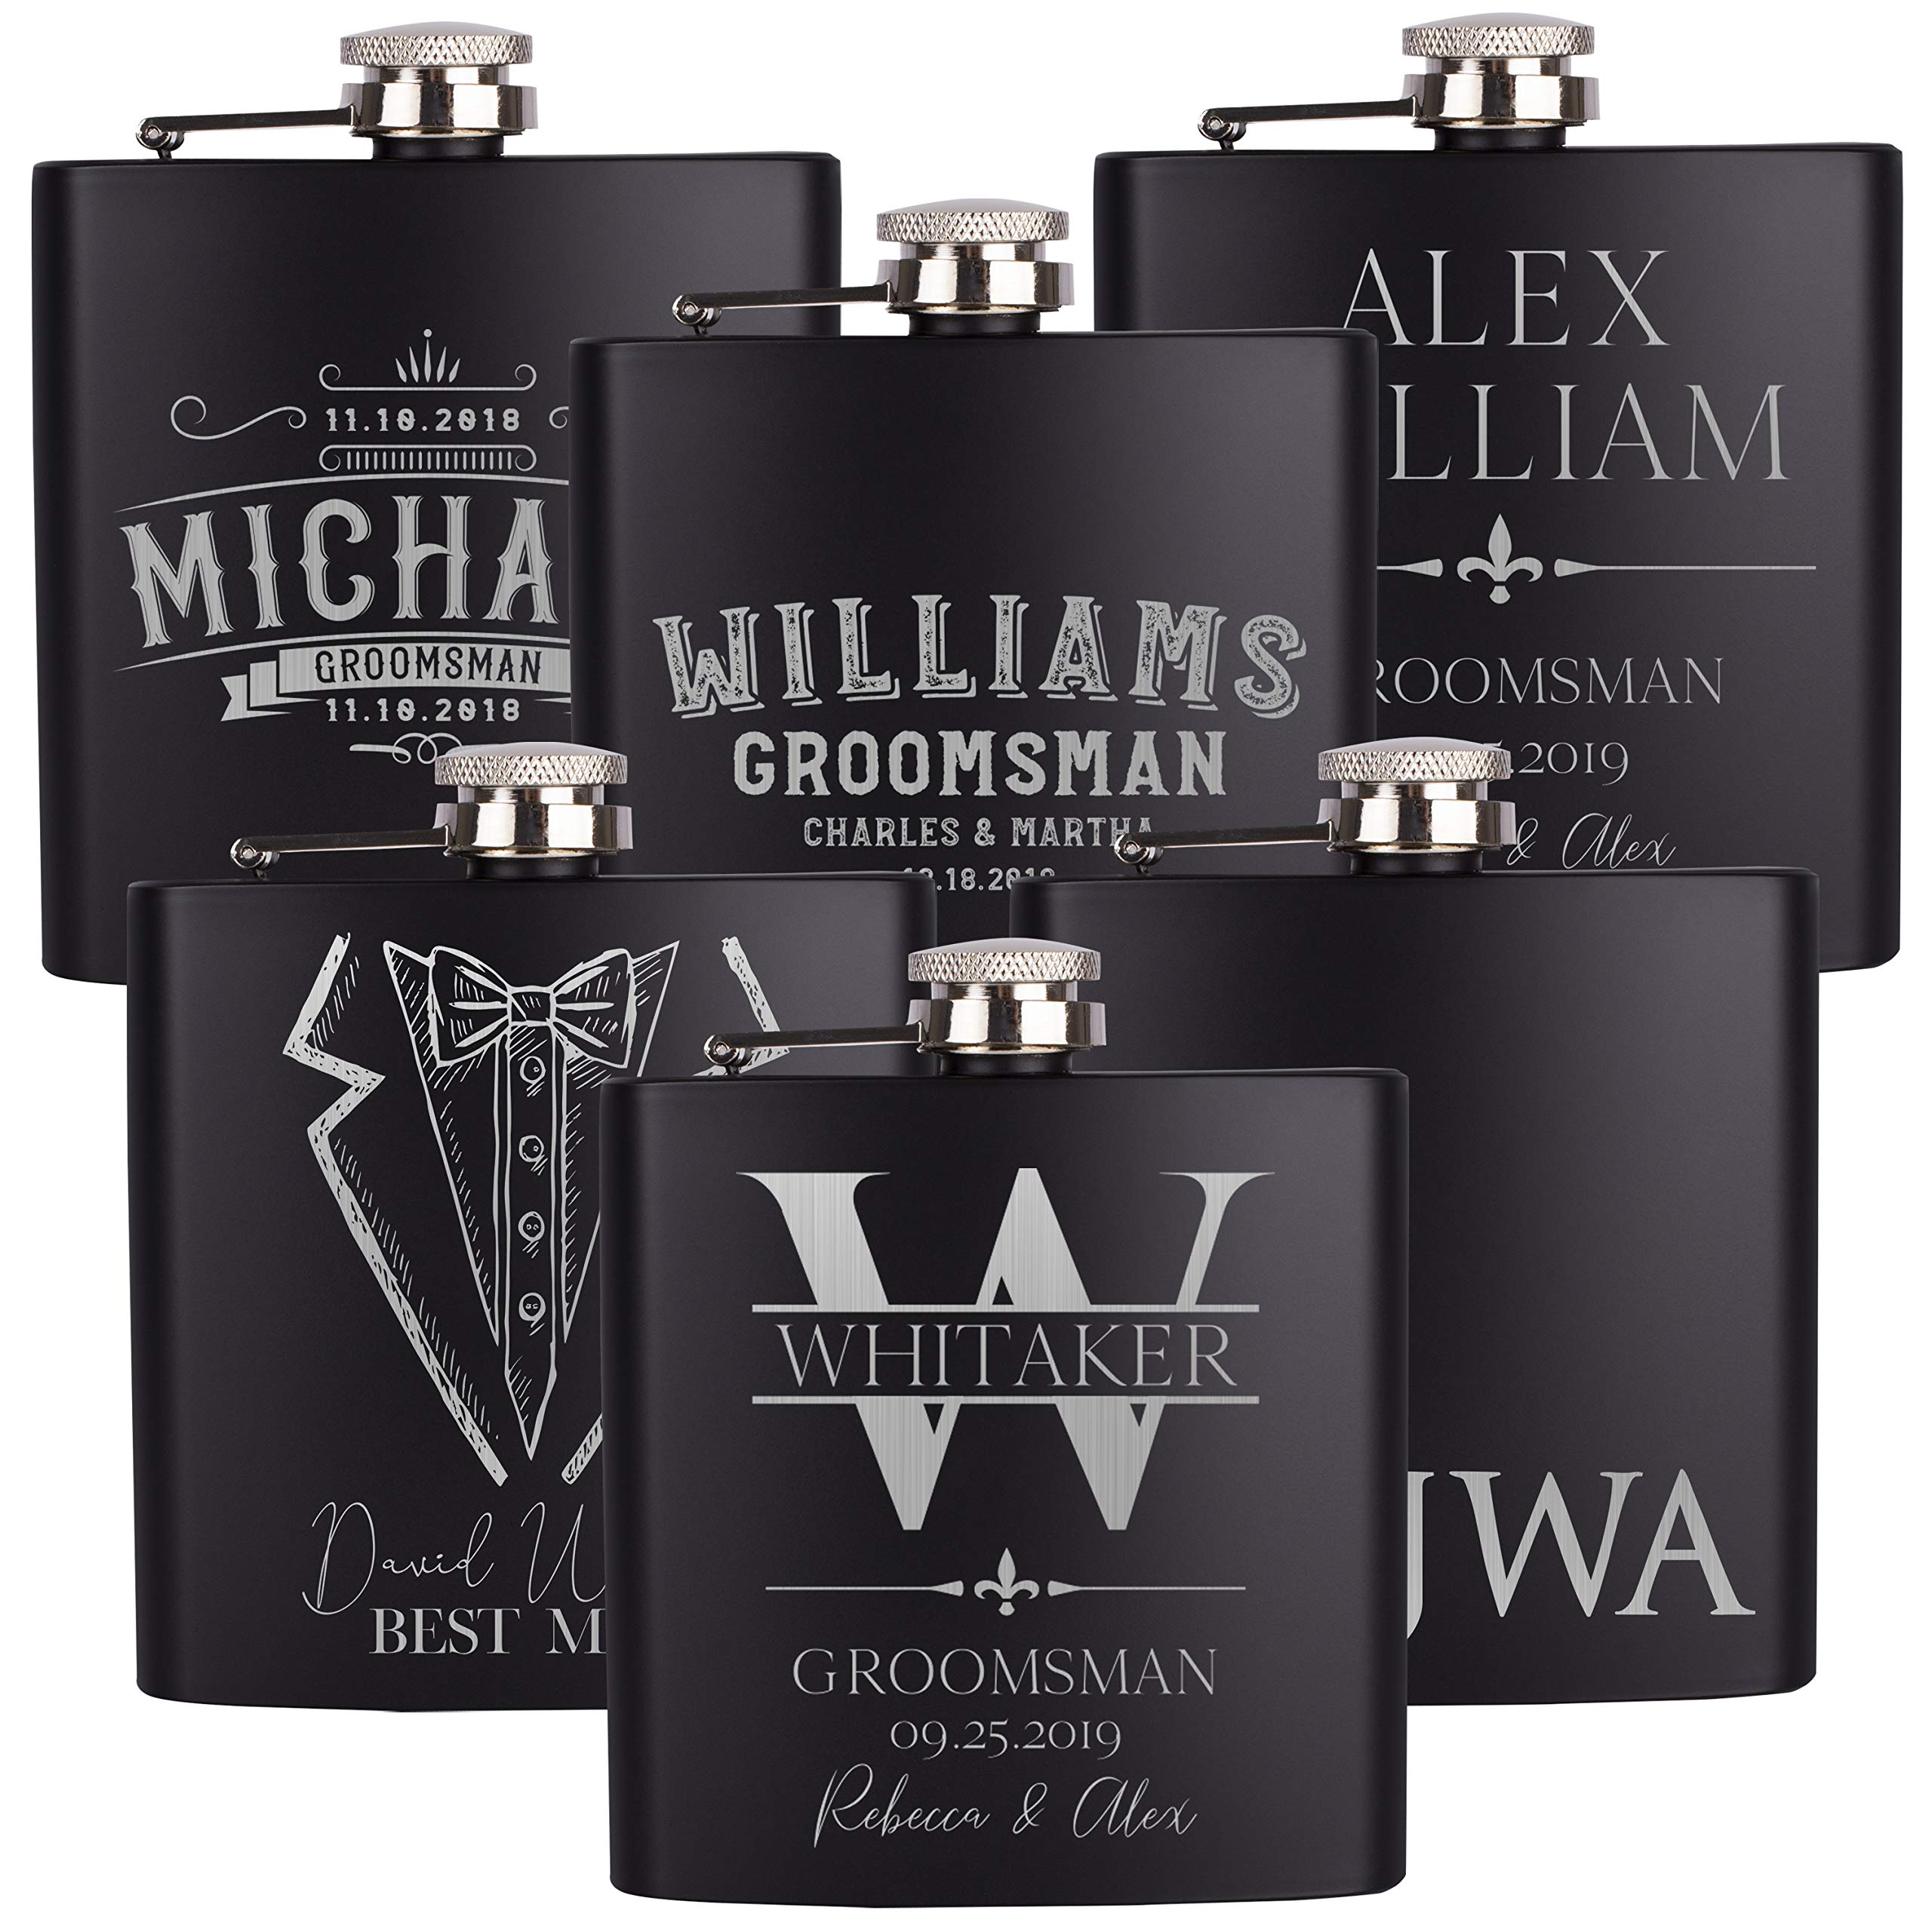 Set of 6, Personalized Groomsmen Gifts For Wedding, 15 Different Designs 2 Optional Gift Boxes, Personalized Flask Groomsman Gifts, Wedding Favor, 6 oz Customized Stainless Steel Hip Flasks by Be Burgundy